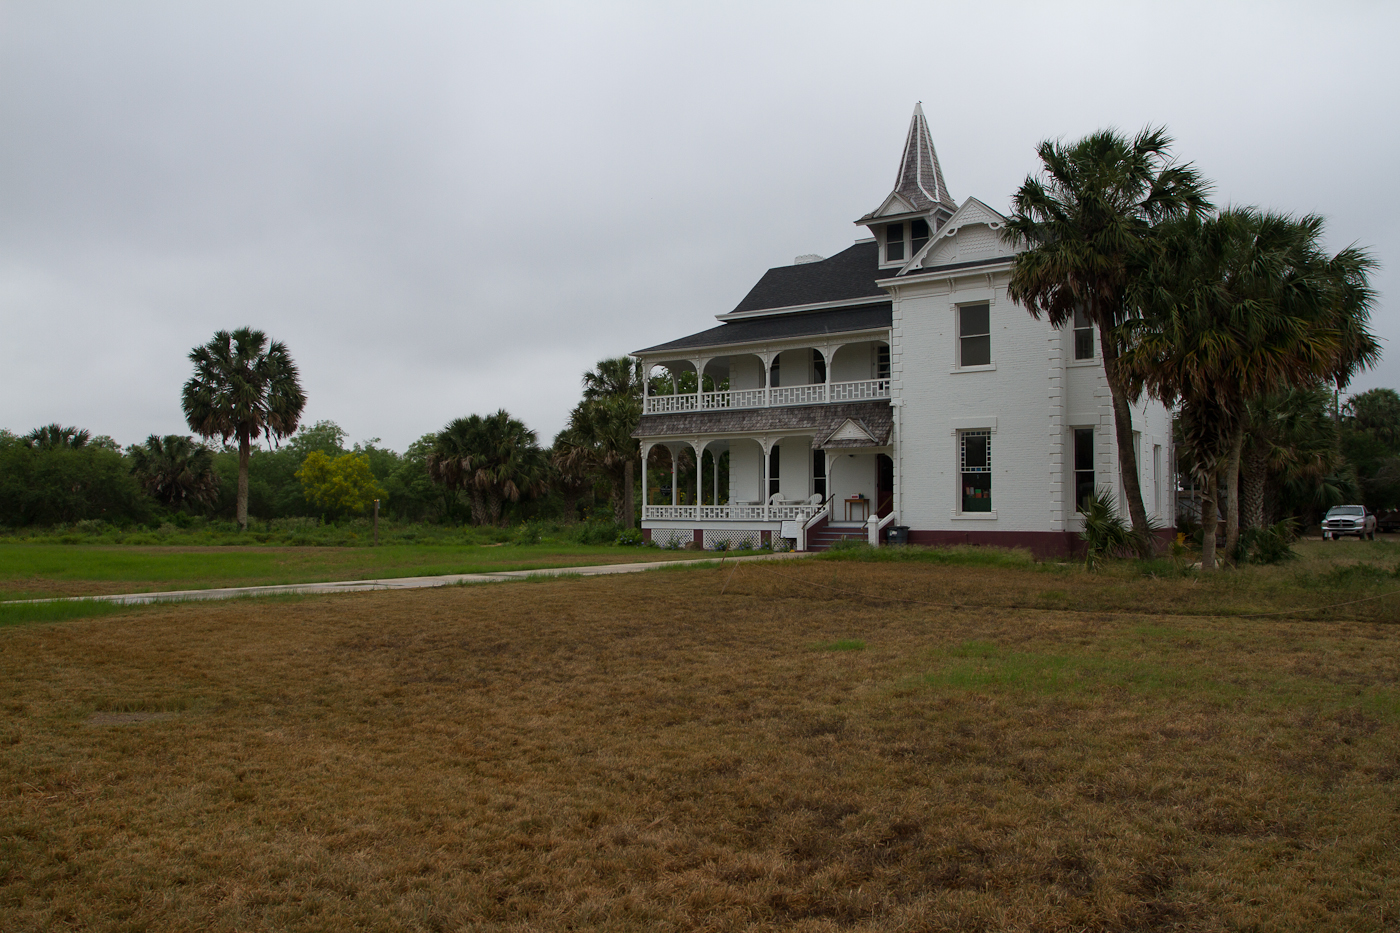 The mansion at Sable Palms, home to a relic forest of Sable